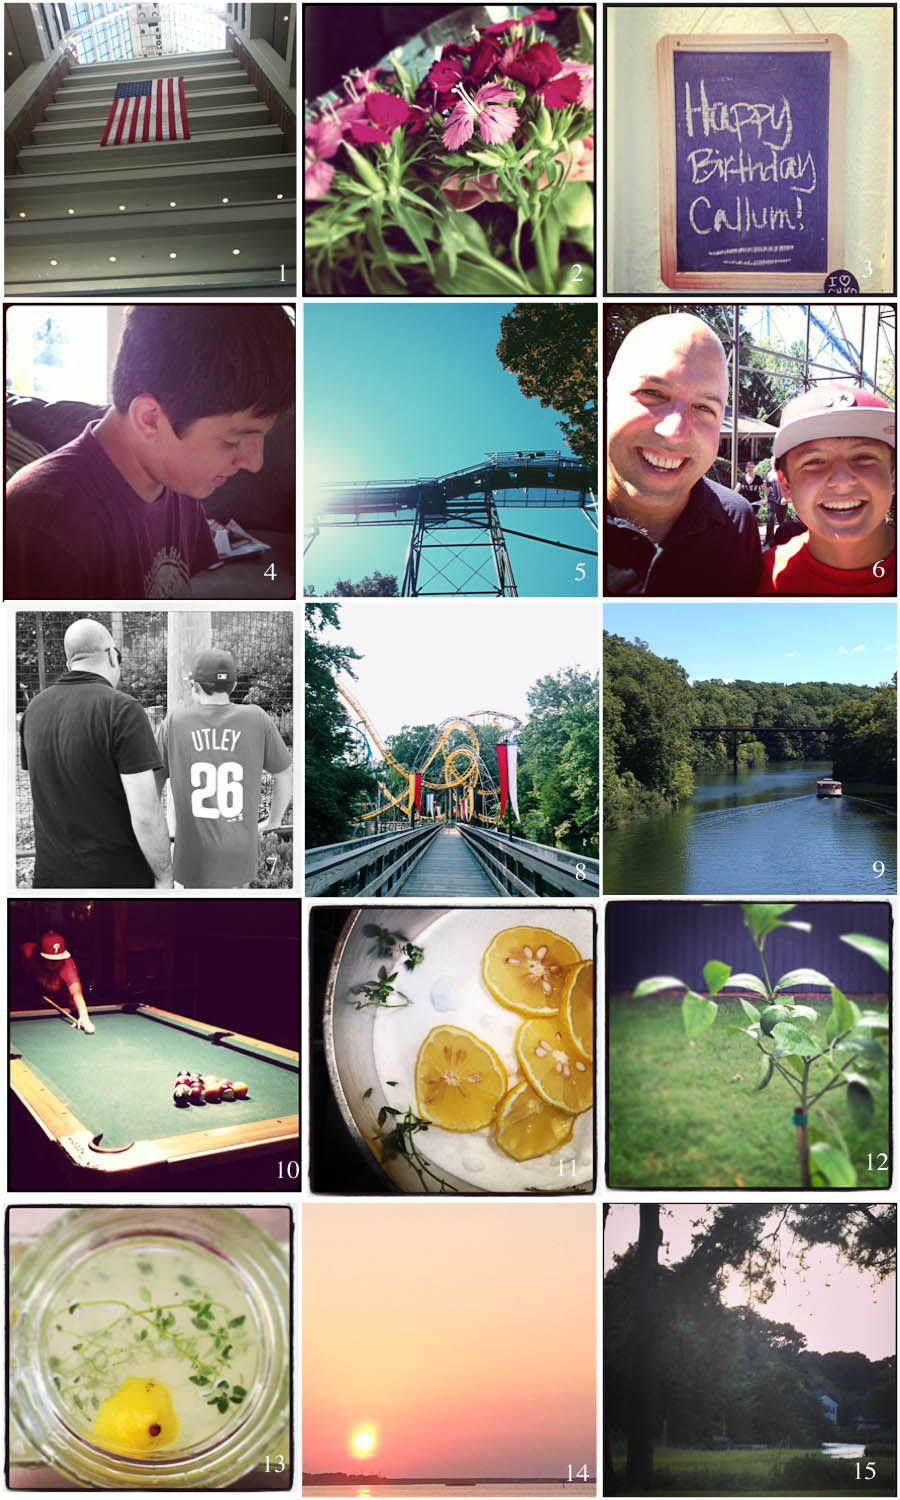 1. US Patent Office   2. Birthday Flowers   3. The Big Day   4. Opening Presents   5. Coaster Heaven   6. My guys   7. Almost as tall as Papa   8. Beautiful Busch Gardens   9. My kind of ride   10. Post-park pool   11. Simple syrup   12. Lemon tree   13. Lemonade   14. River Sunset   15. Marsh at twilight